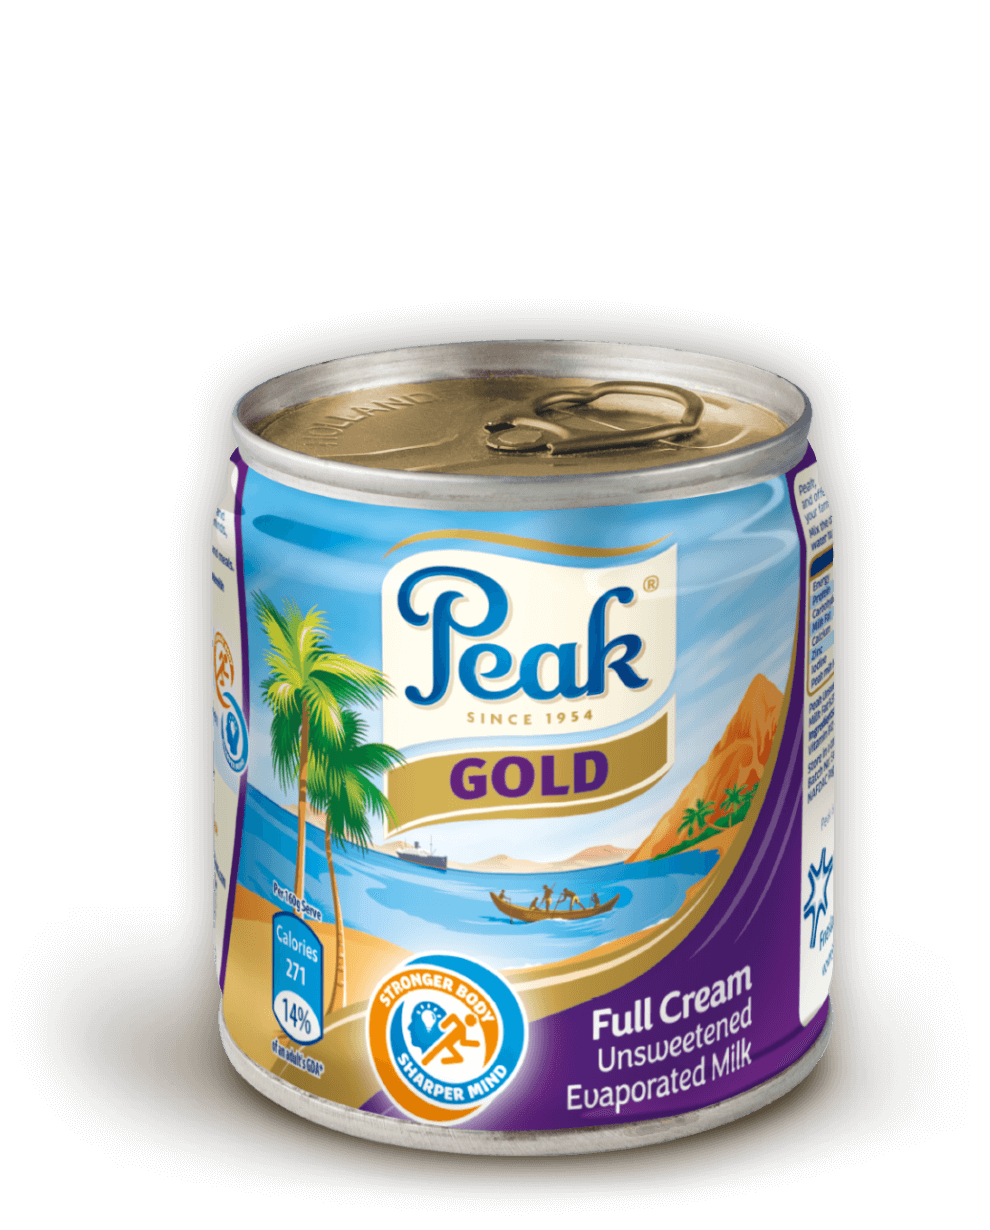 Peak Gold Full Cream Unsweetened Evaporated Milk Tin